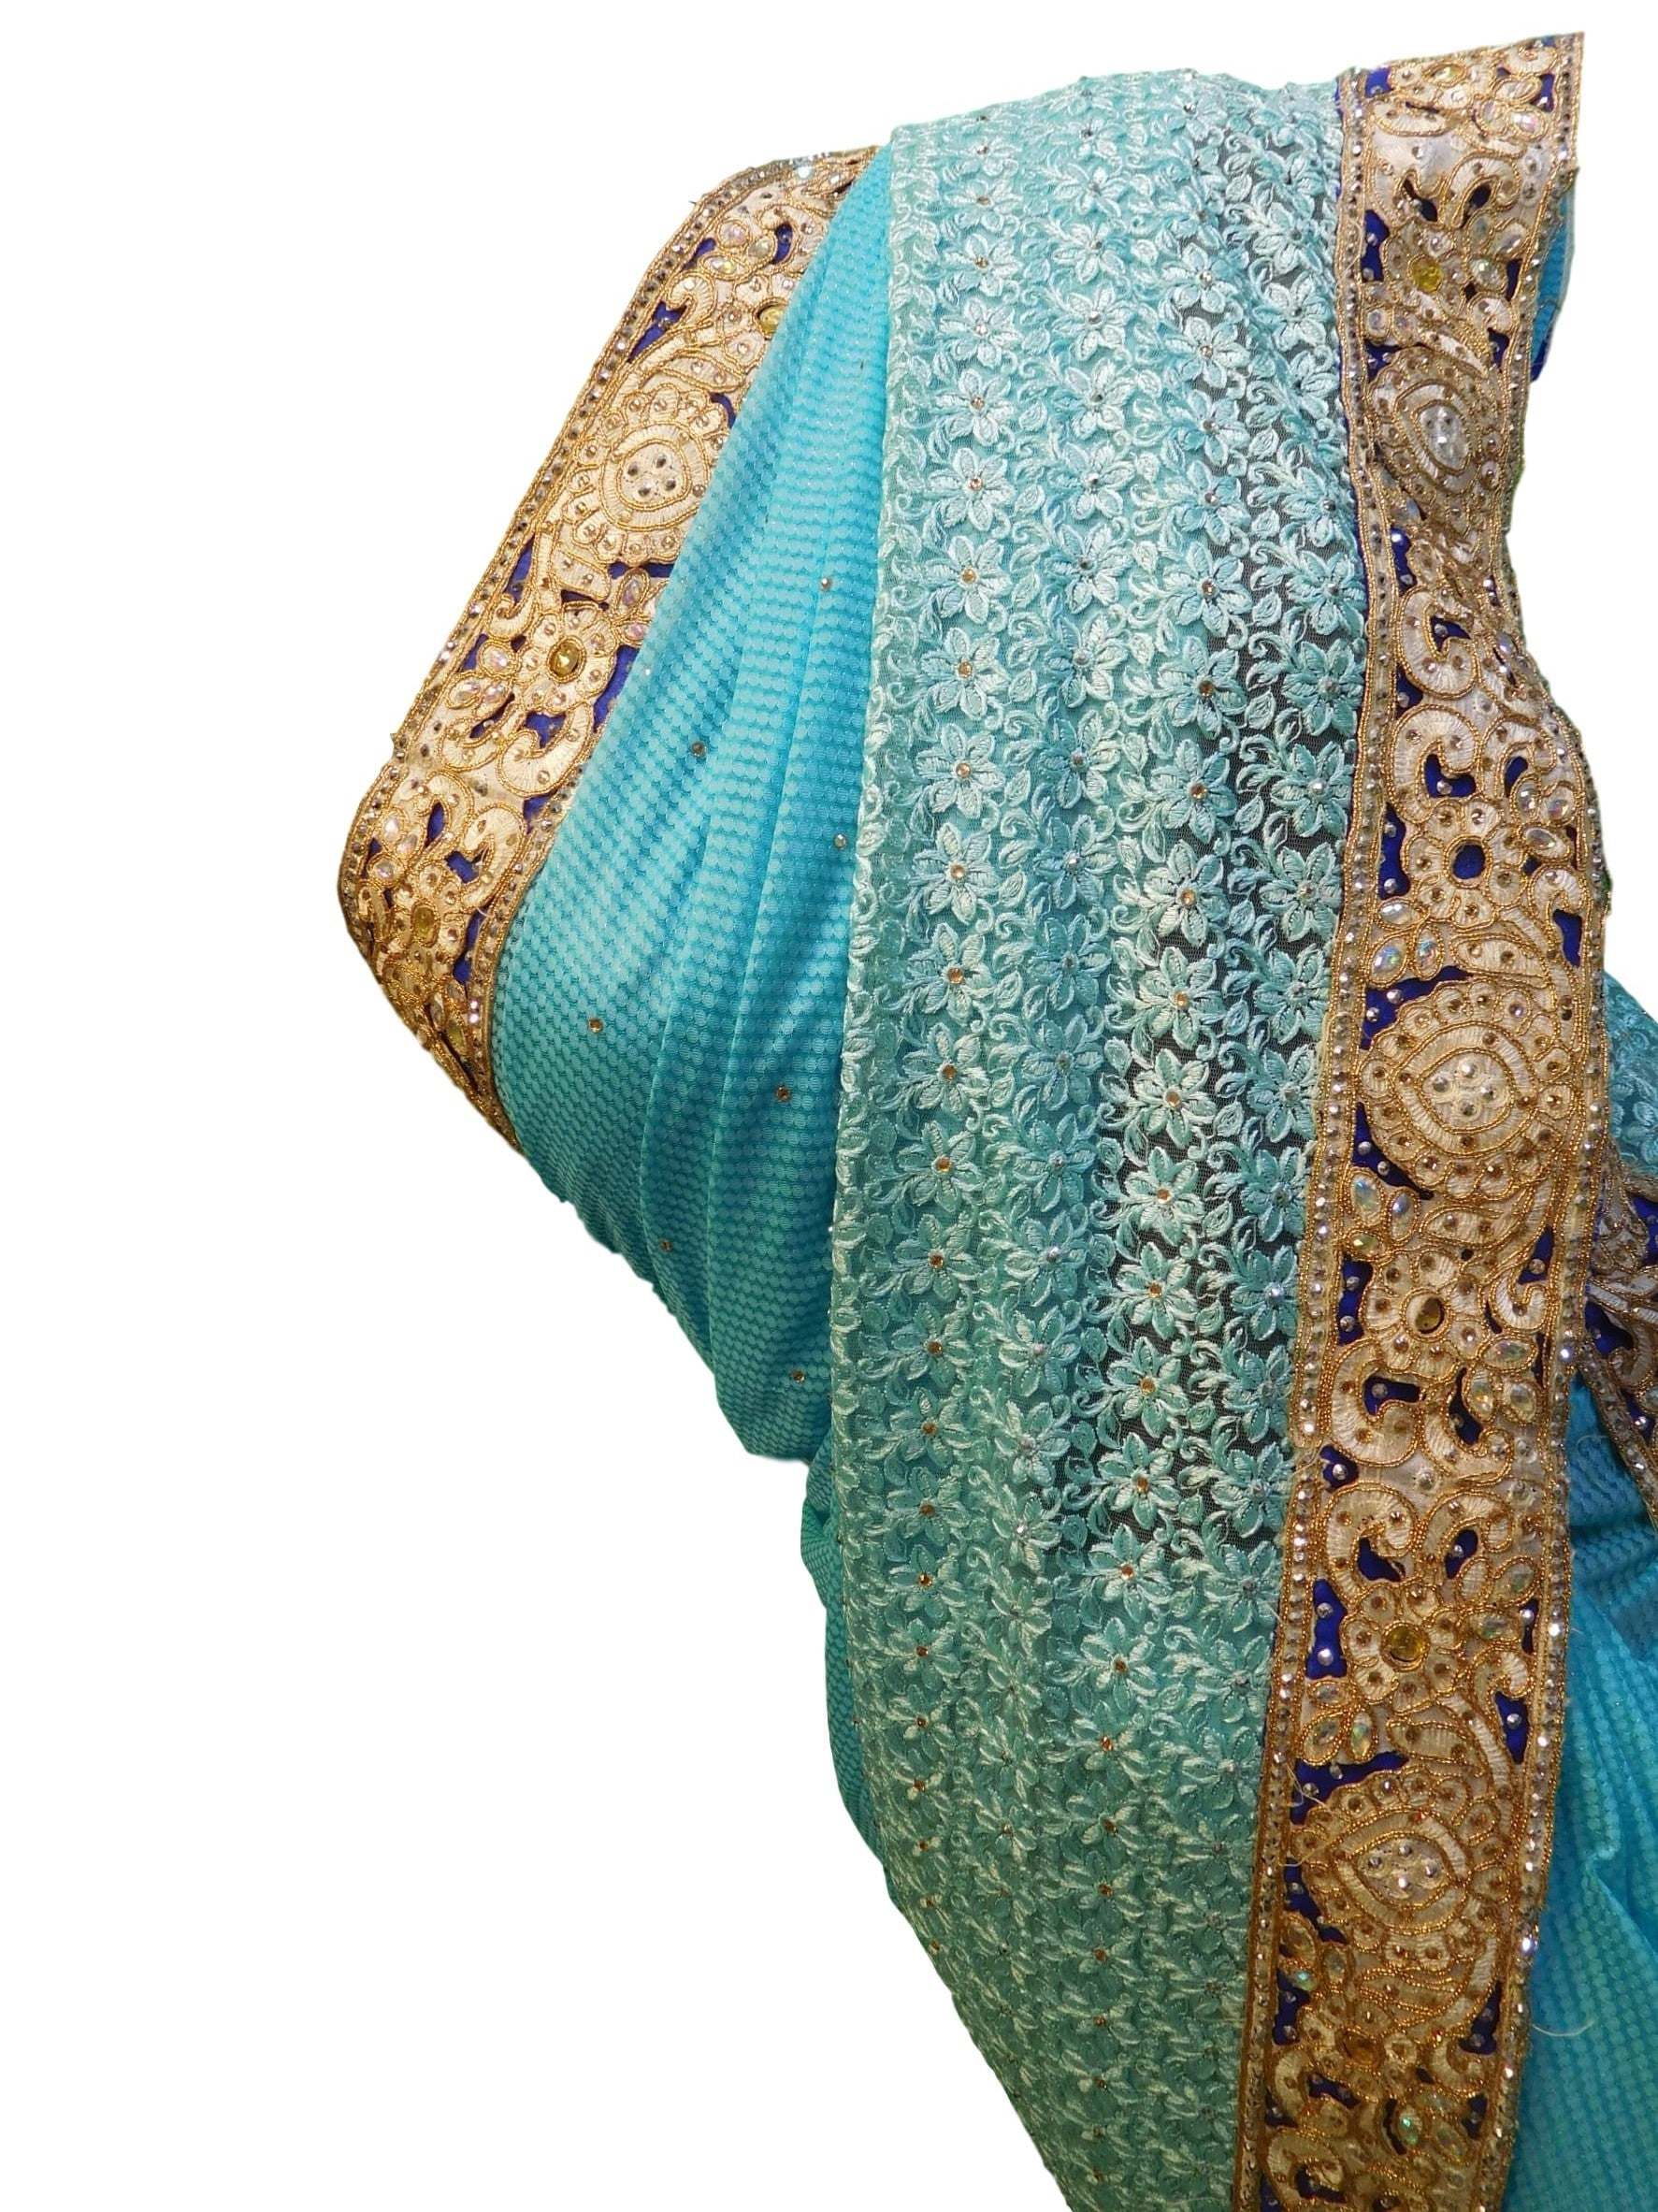 Blue Designer Net Hand Embroidery Stone Border Sari Saree